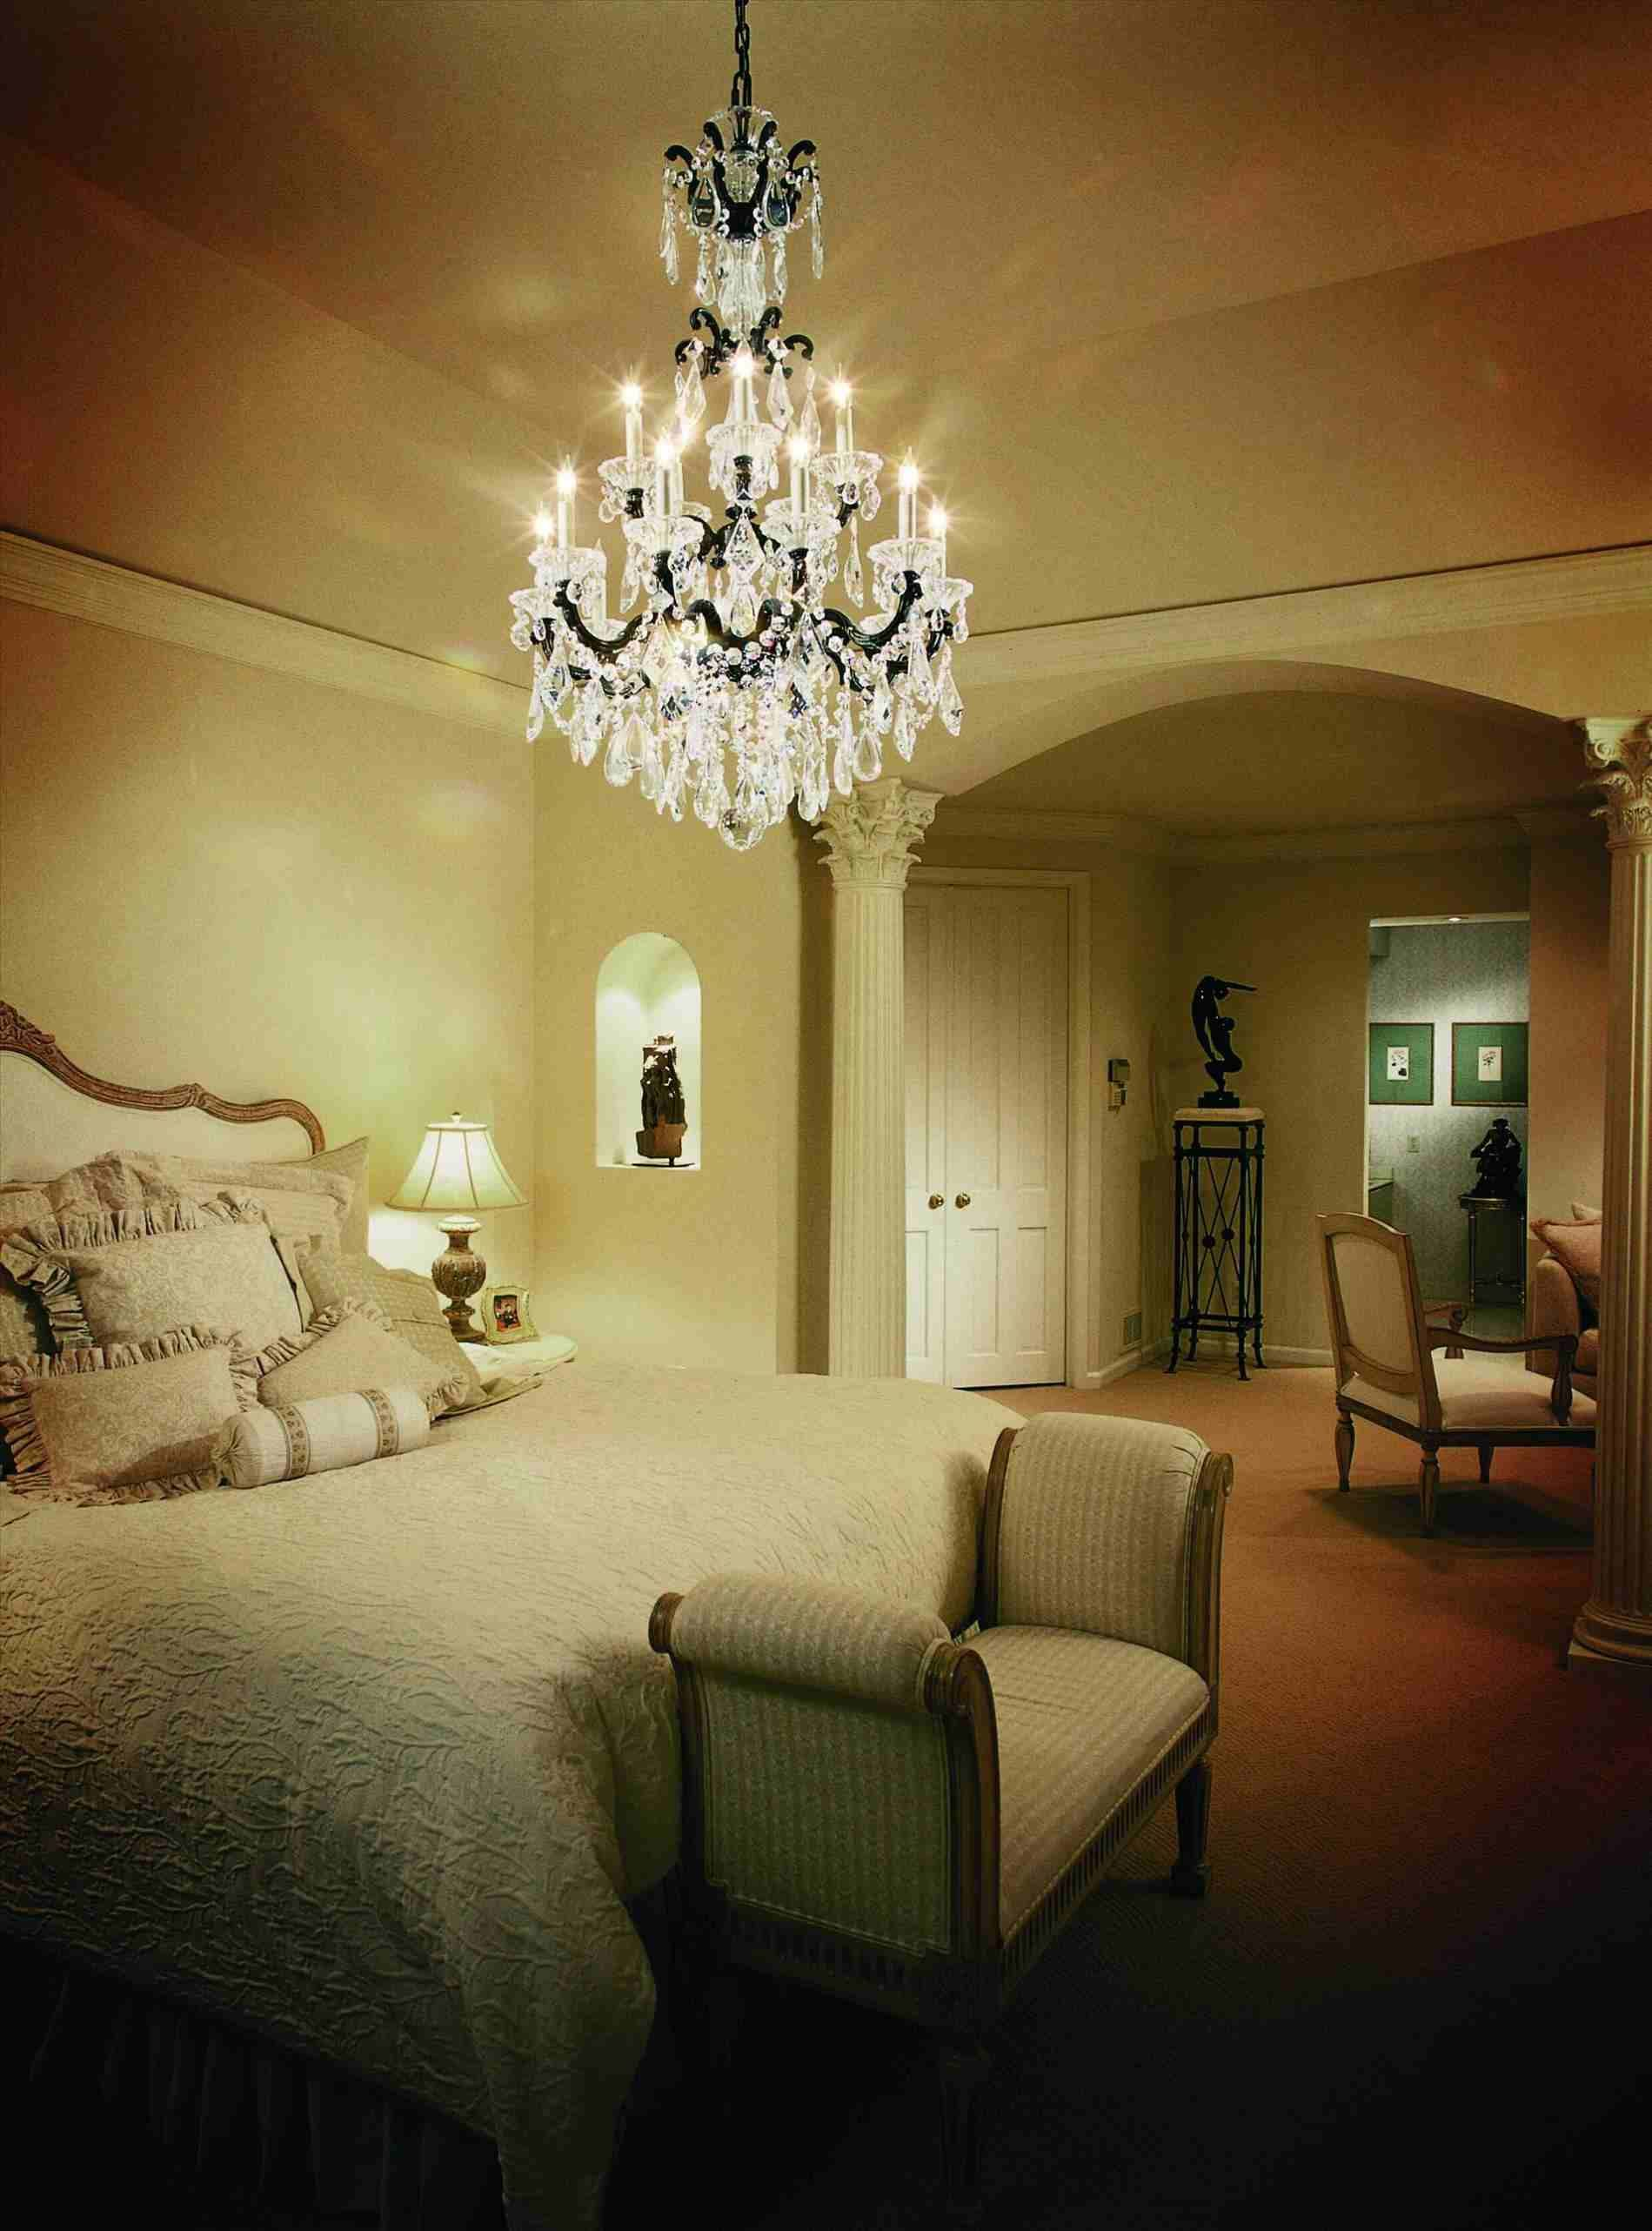 Amazing Inexpensive Chandeliers For Bedroom 4 Surprising 12 ...